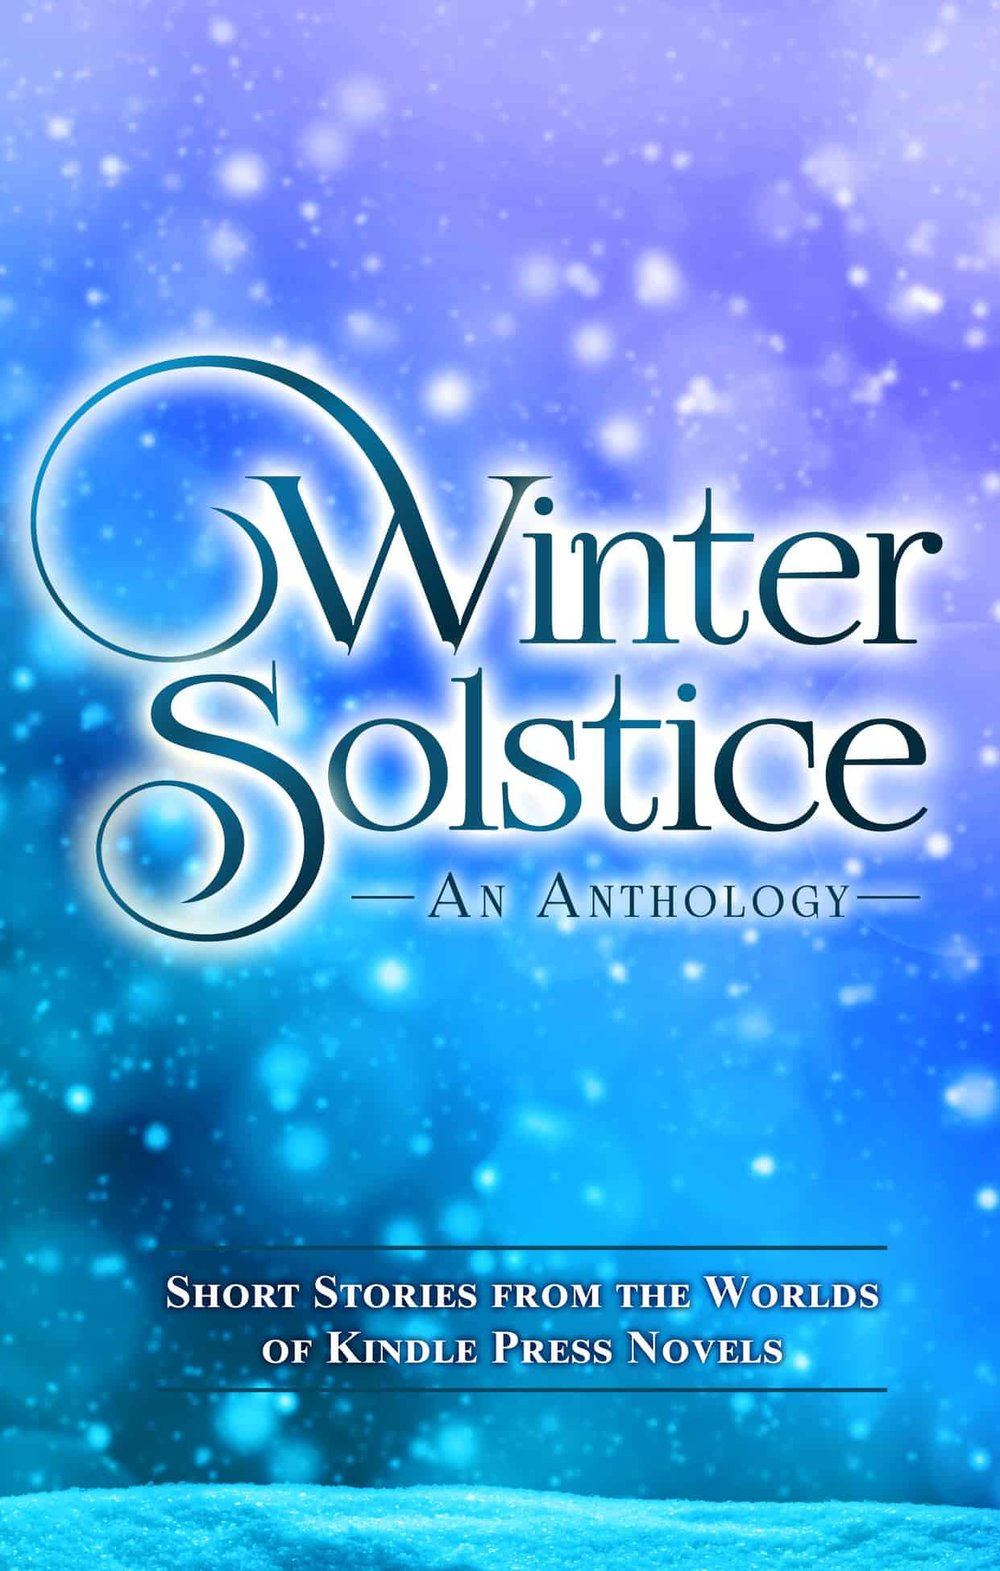 Winter Solstice Landing Page E-book Cover